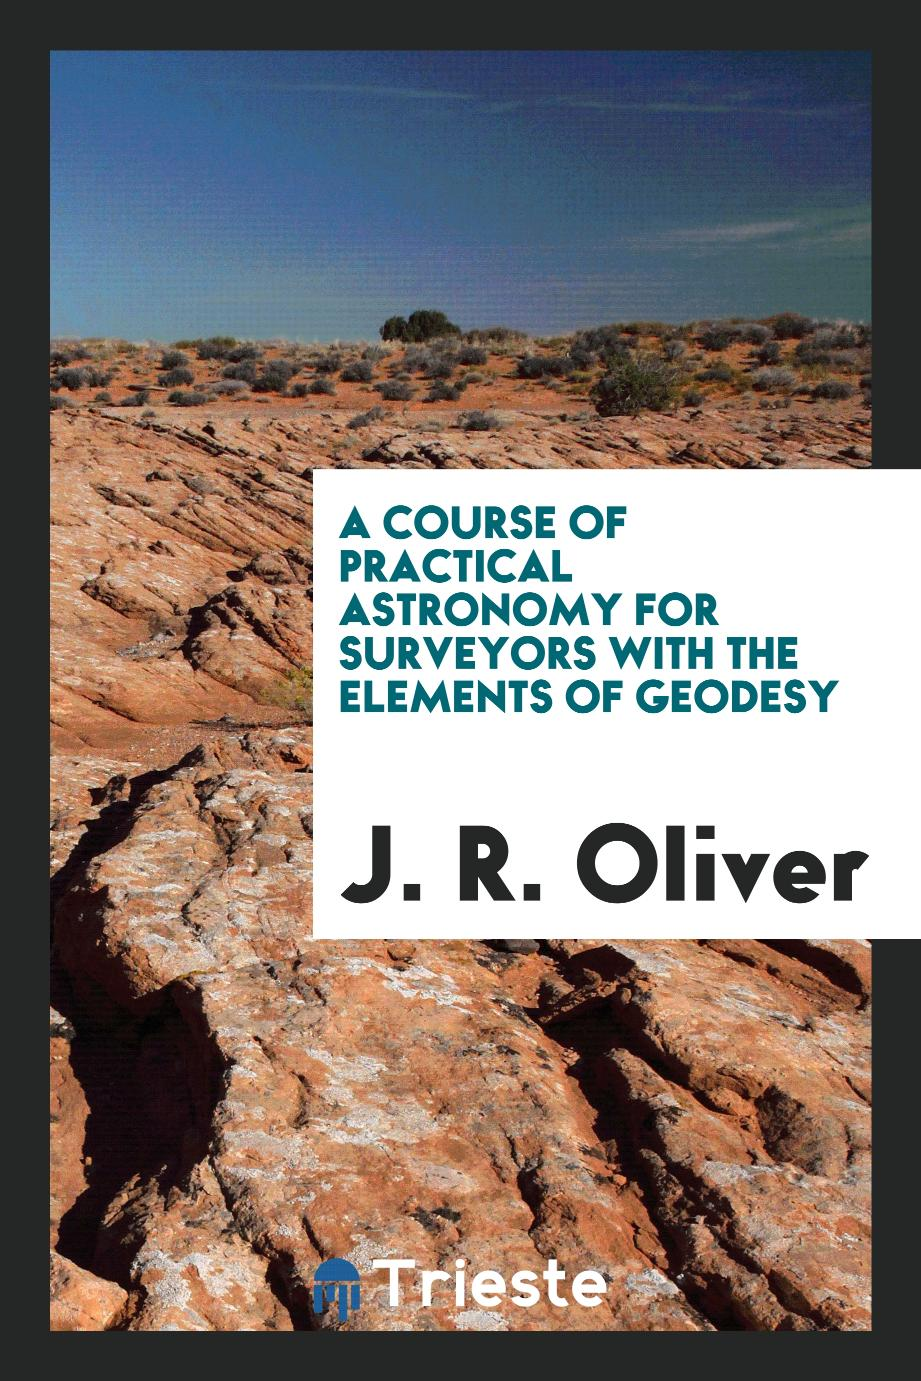 A Course of Practical Astronomy for Surveyors With the Elements of Geodesy